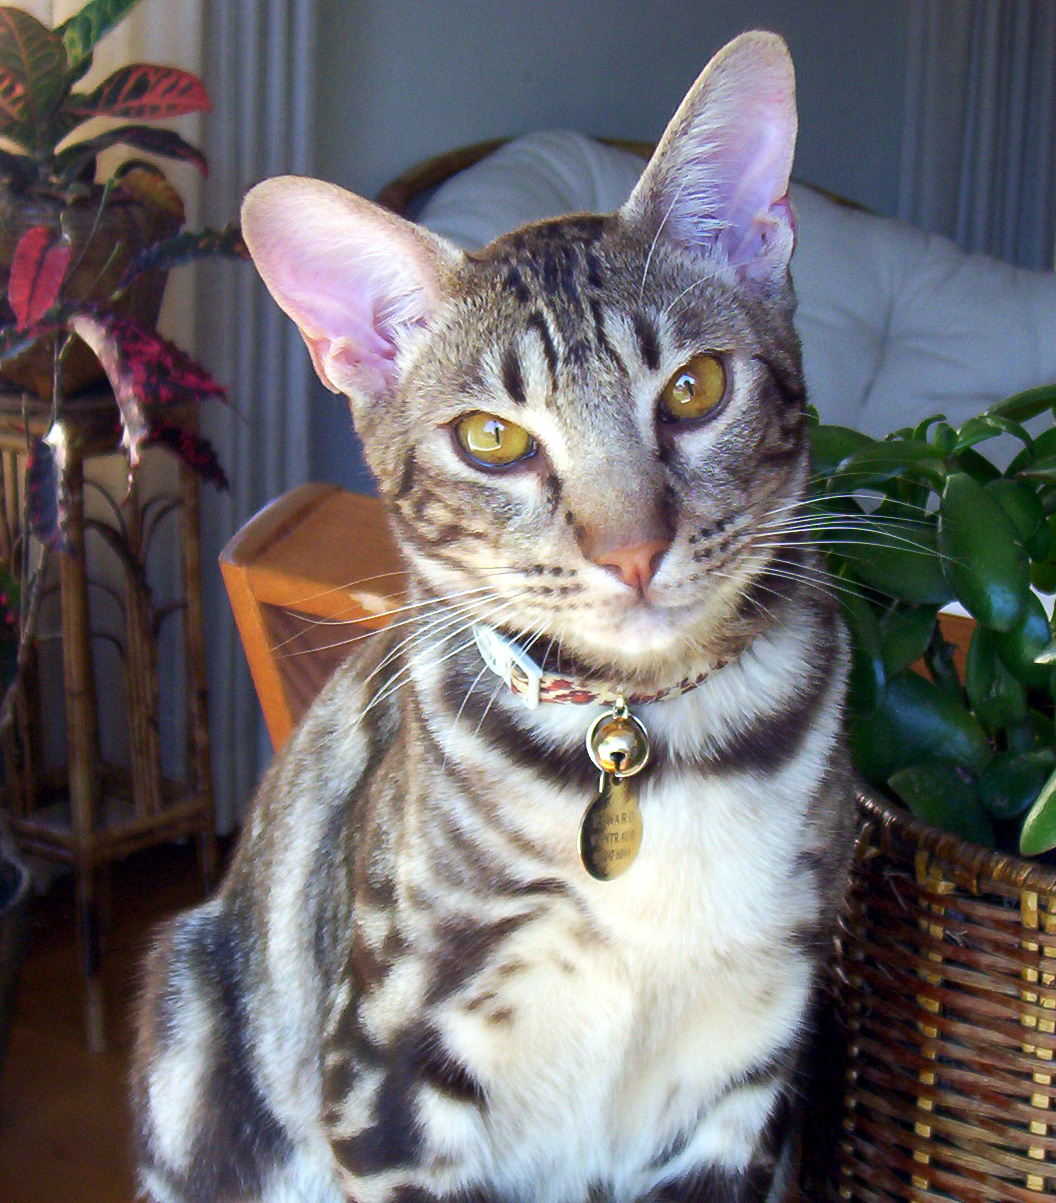 The Ocicat Cat is an alldomestic breed of cat which